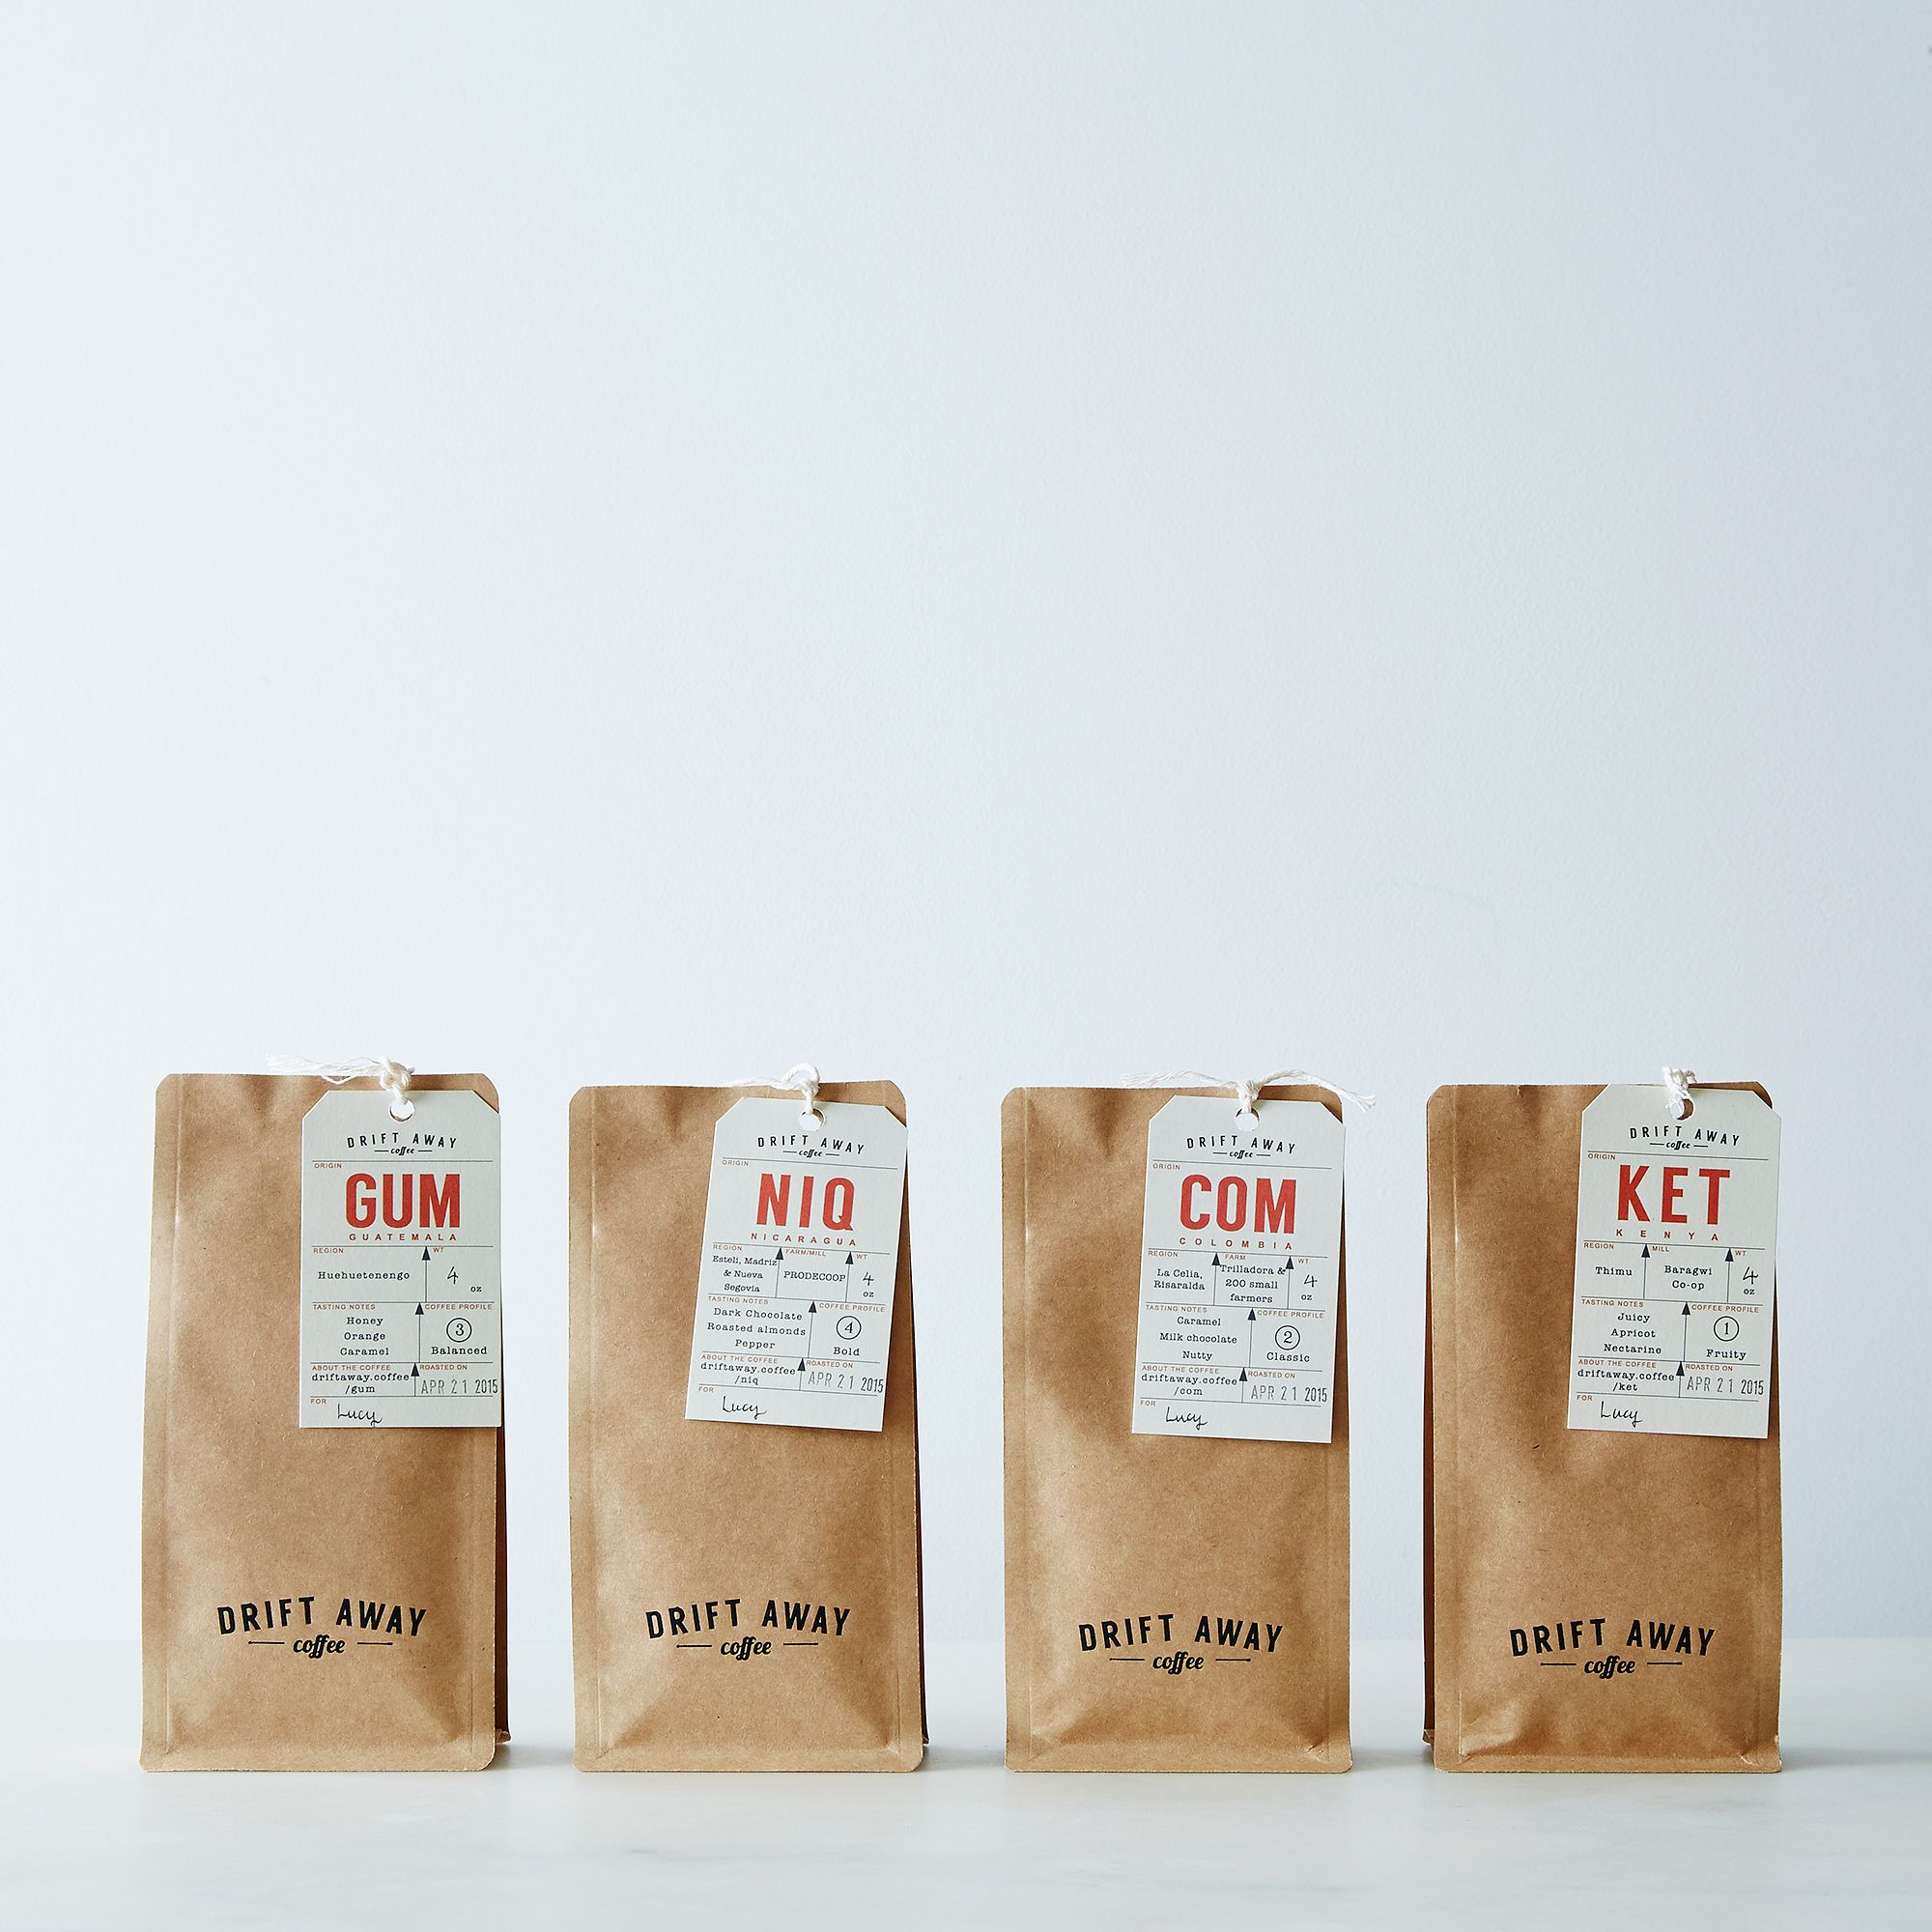 3b2160d6 9ae8 477a 848e 87f1e82519b7  2015 0506 driftaway coffee driftaway single origin coffee sampler pack silo james ransom 004